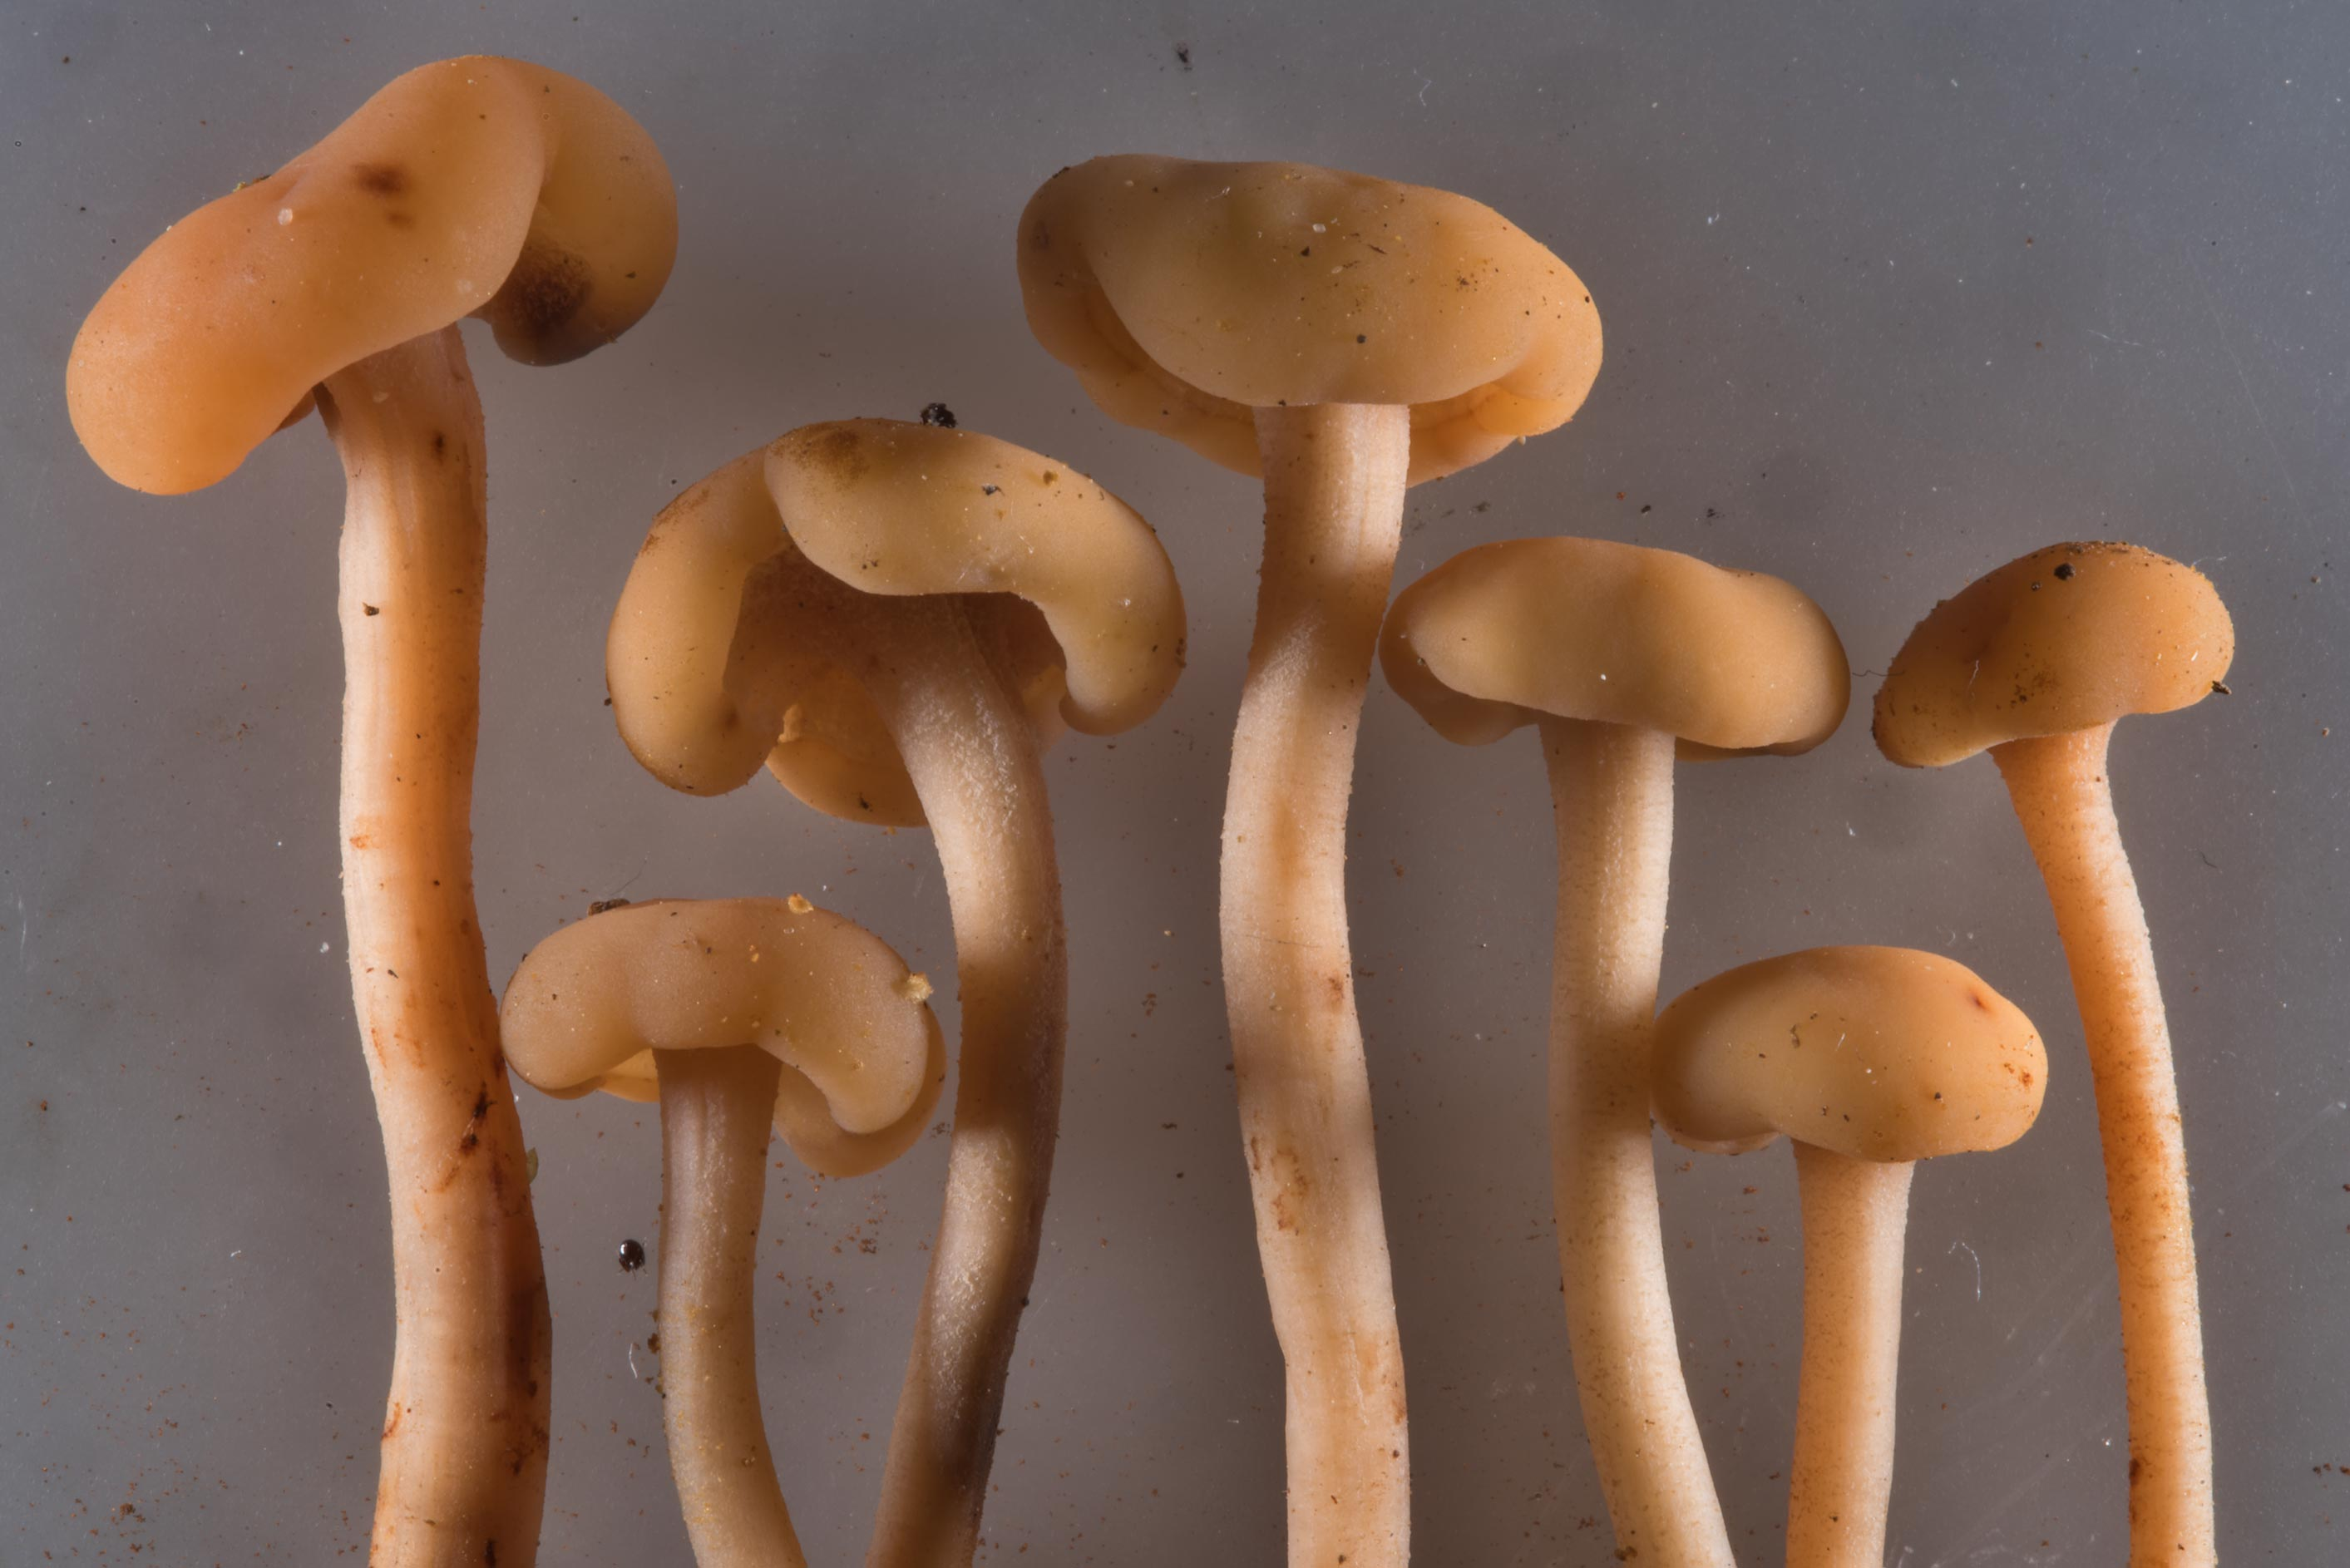 Mushrooms Cudonia circinans taken from...miles north from St.Petersburg. Russia